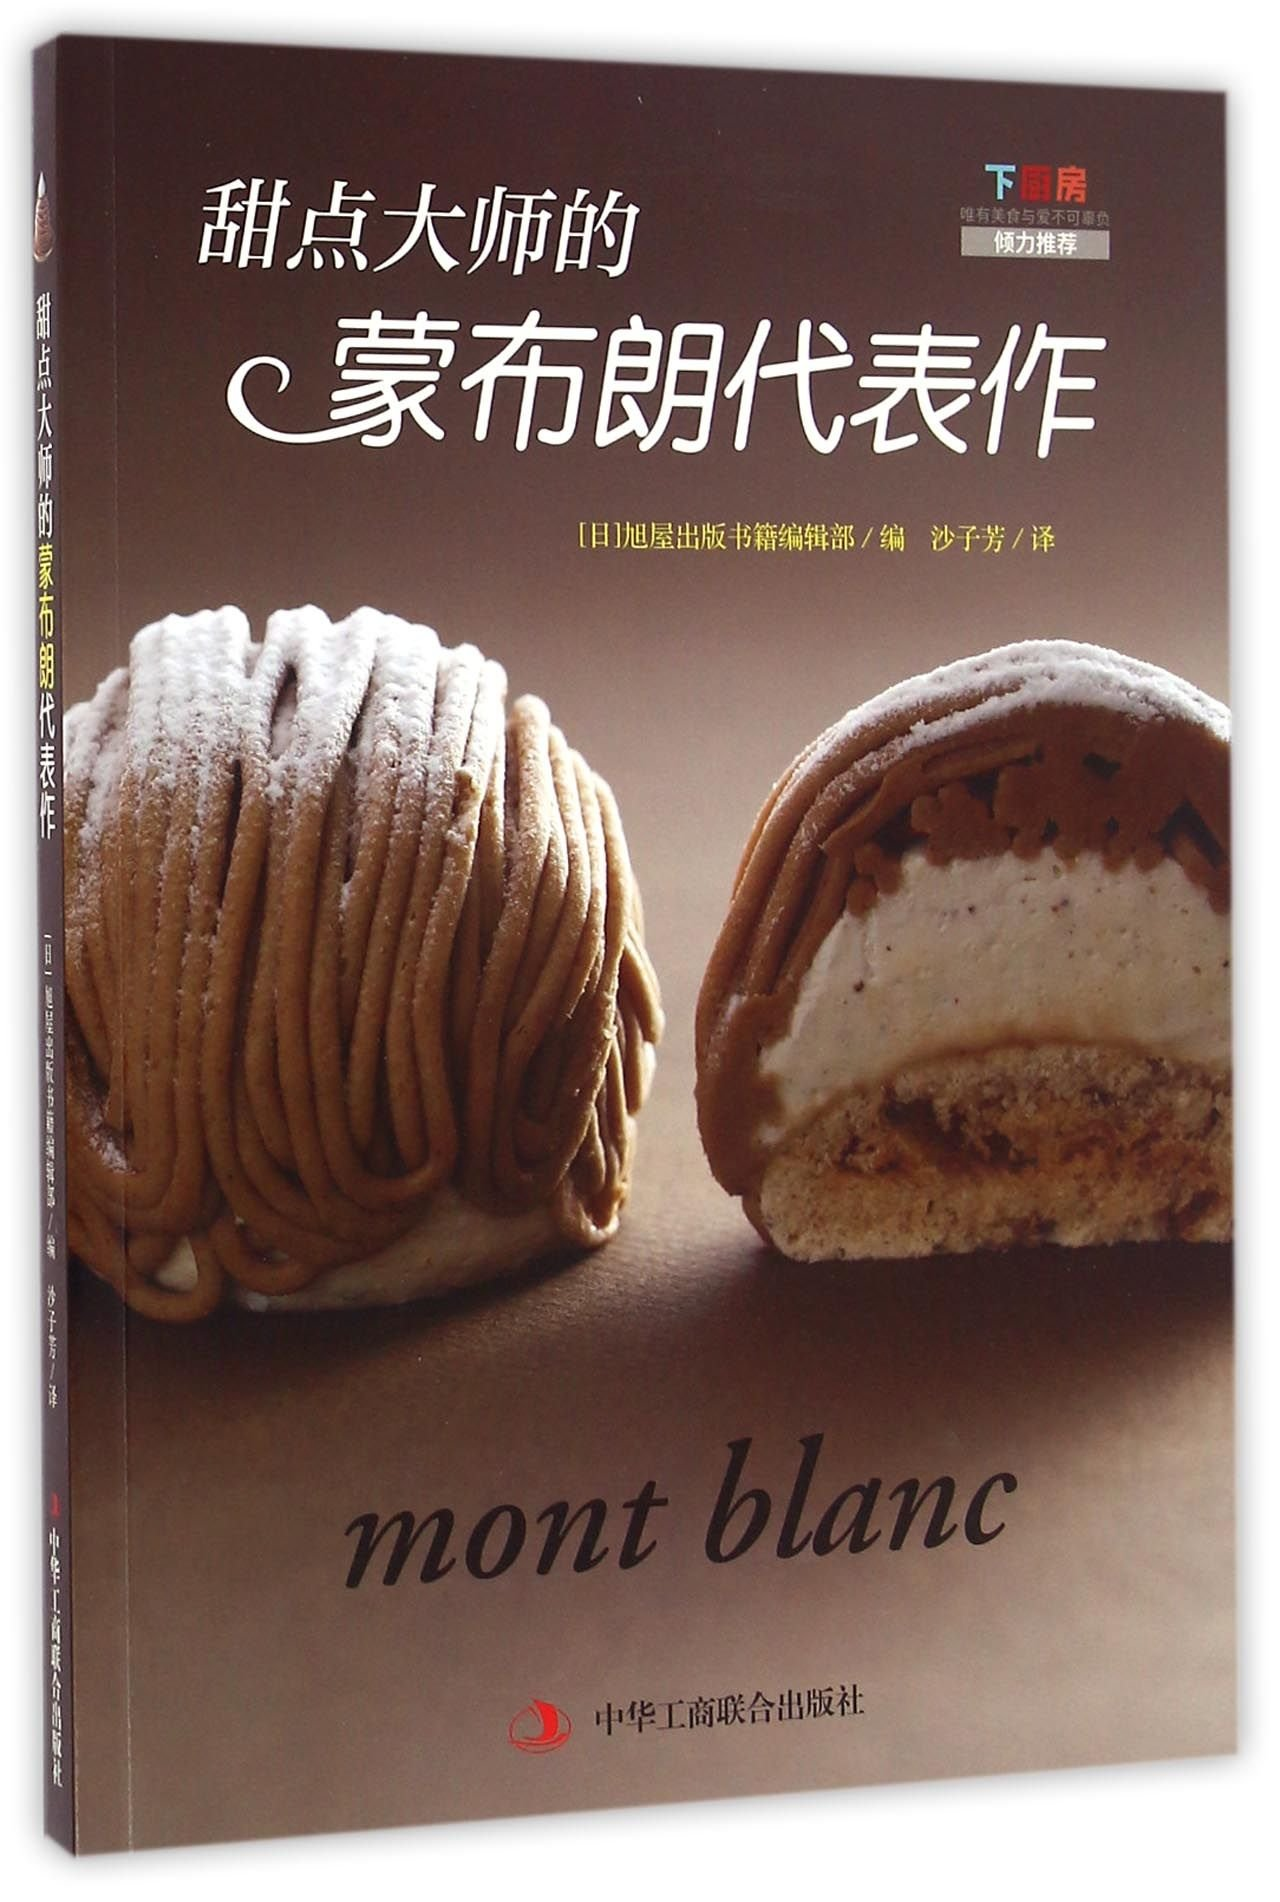 Mont Blanc (Chinese Edition) pdf